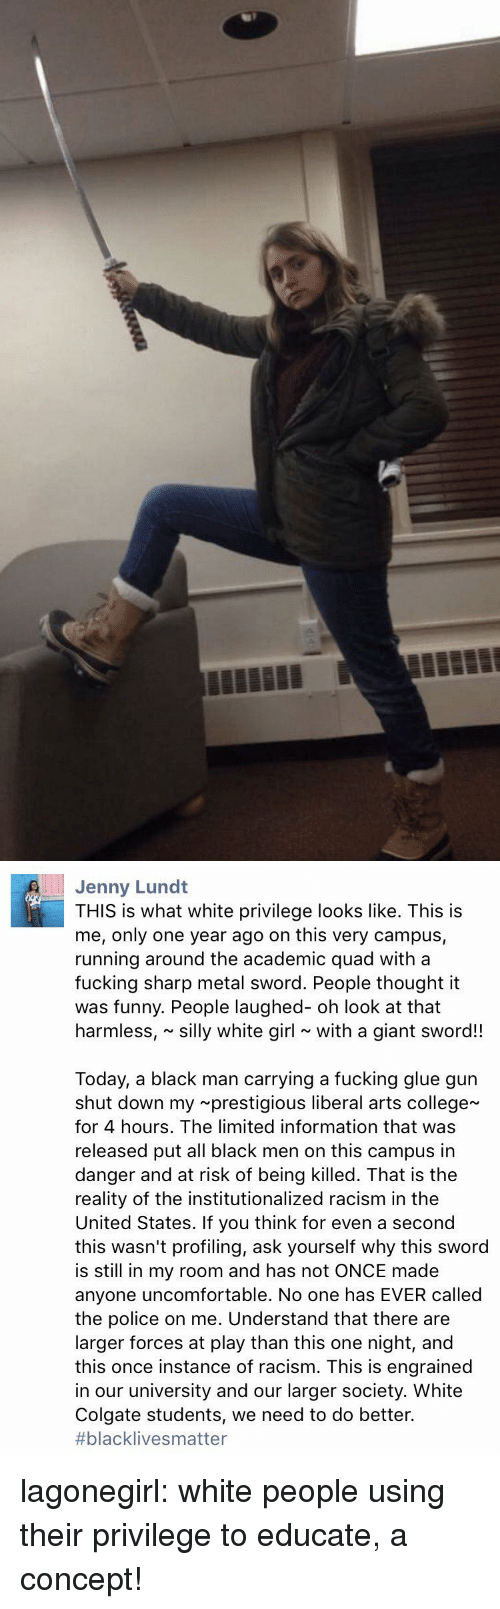 College, Fucking, and Funny: Jenny Lund  THIS is what white privilege looks like. This is  me, only one year ago on this very campus,  running around the academic quad with a  fucking sharp metal sword. People thought it  was funny. People laughed- oh look at that  harmless, silly white girl with a giant sword!!  Today, a black man carrying a fucking glue gun  shut down my prestigious liberal arts college  for 4 hours. The limited information that was  released put all black men on this campus in  danger and at risk of being killed. That is the  reality of the institutionalized racism in the  United States. If you think for even a second  this wasn't profiling, ask yourself why this sword  is still in my room and has not ONCE made  anyone uncomfortable. No one has EVER called  the police on me. Understand that there are  larger forces at play than this one night, and  this once instance of racism. This is engrained  in our university and our larger society. White  Colgate students, we need to do better.  #blackIive s matter lagonegirl:    white people using their privilege to educate, a concept!